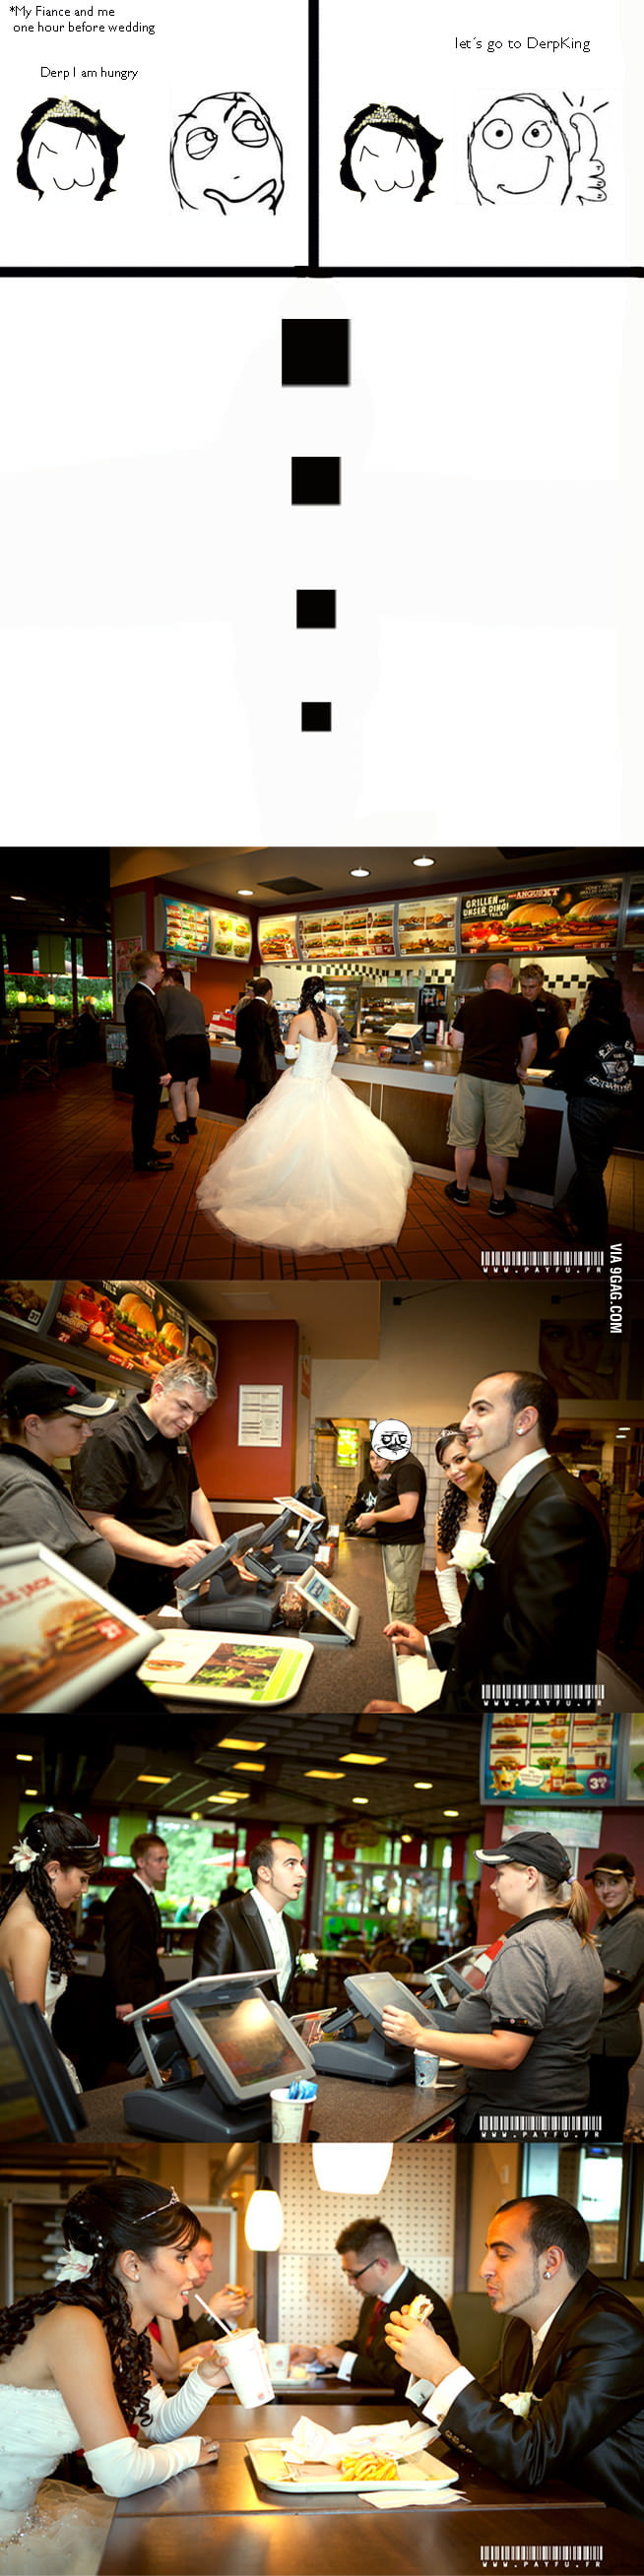 Burger King at wedding day